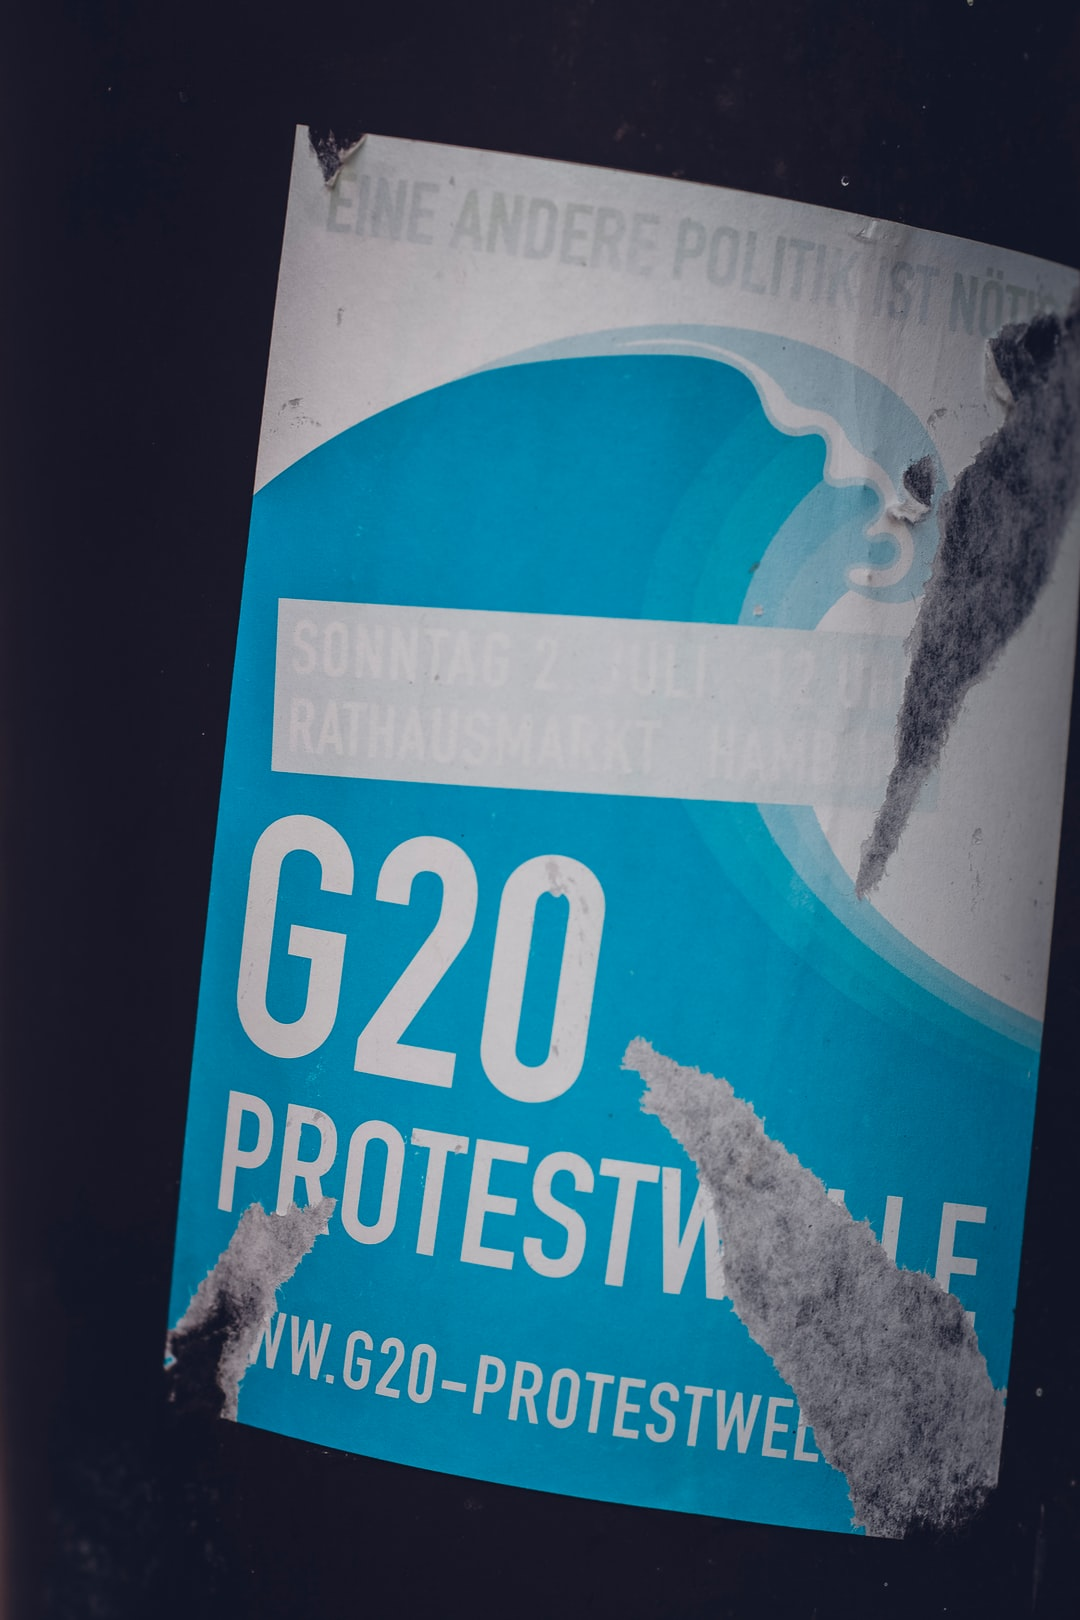 G20 Protest demonstration outcry sticker. Eine andere Politik ist nötig. // Another policy is needed.